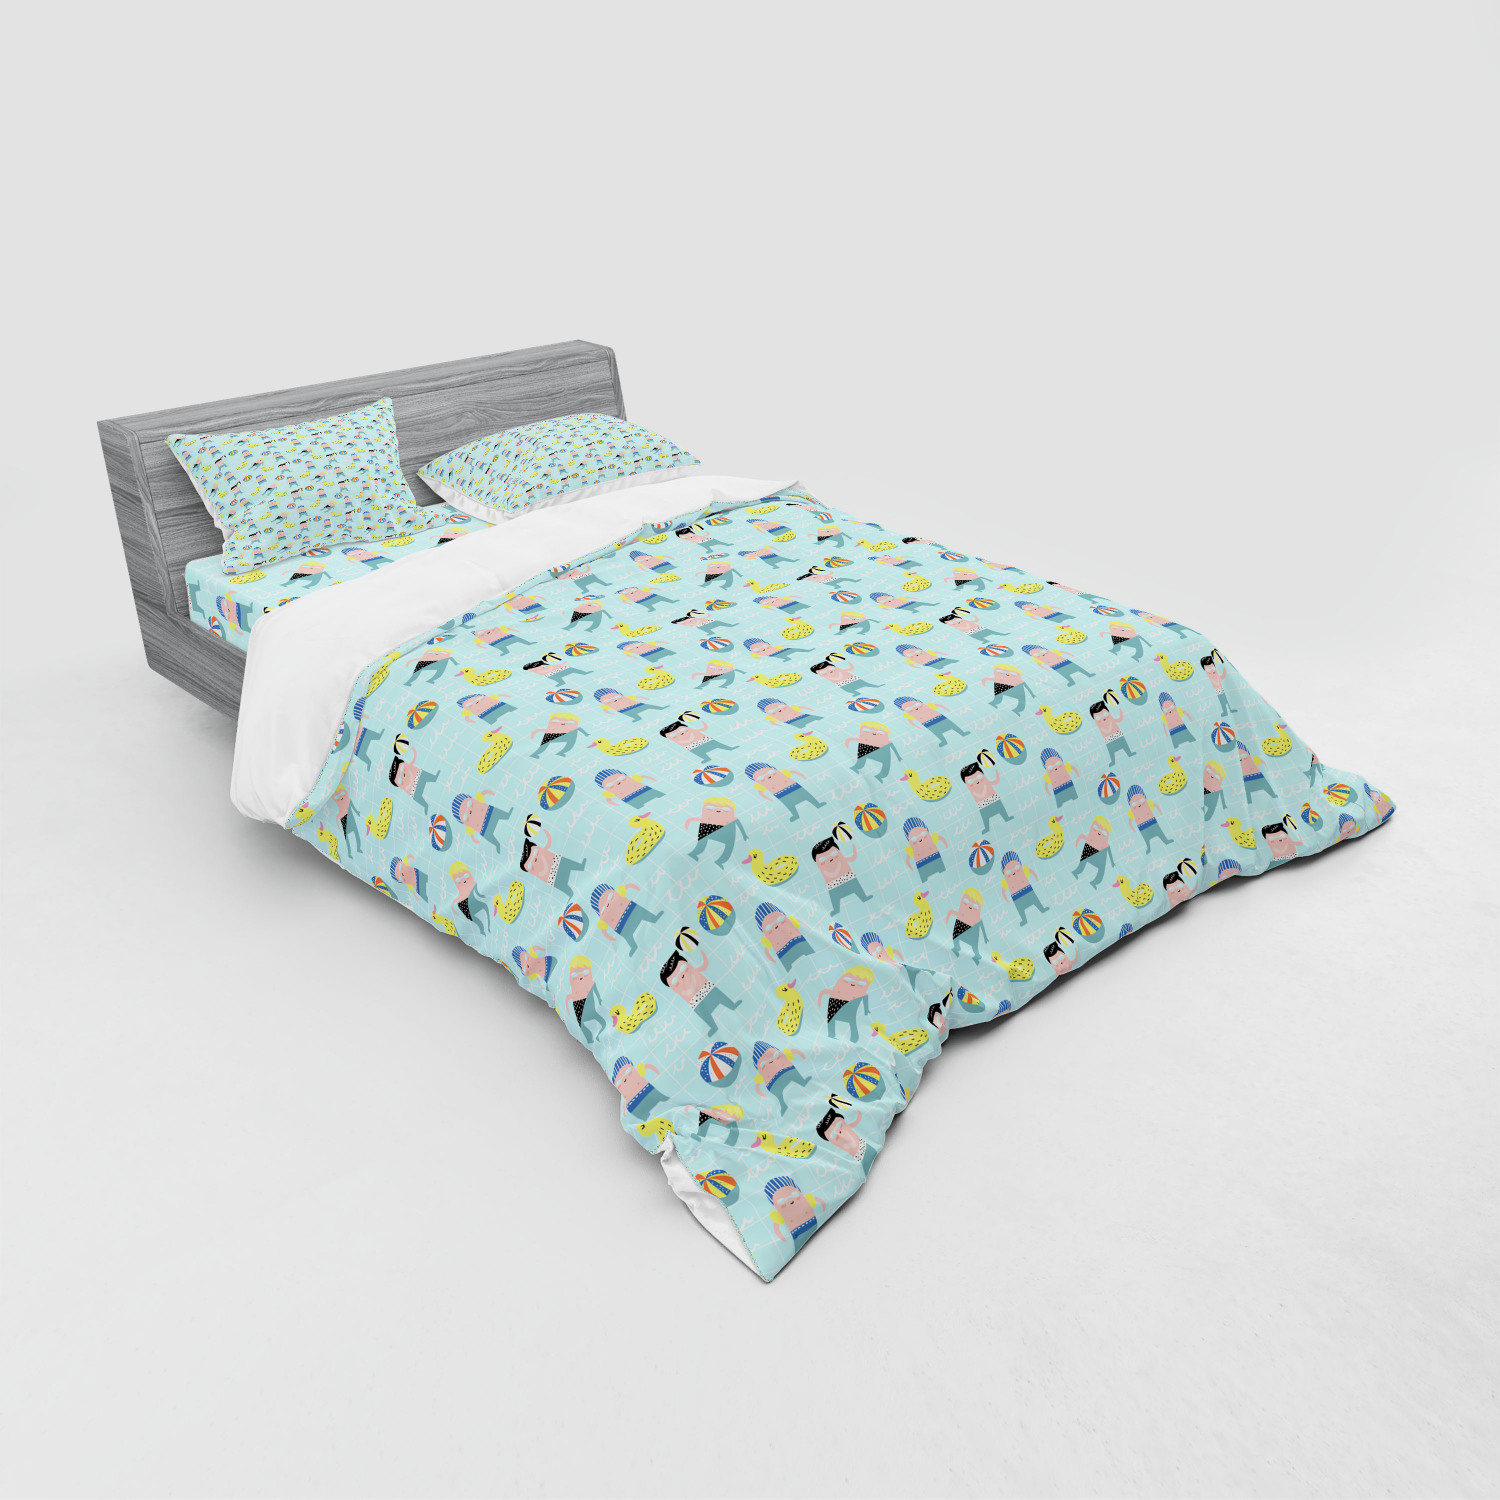 thumbnail 243 - Ambesonne Summer Bedding Set Duvet Cover Sham Fitted Sheet in 3 Sizes